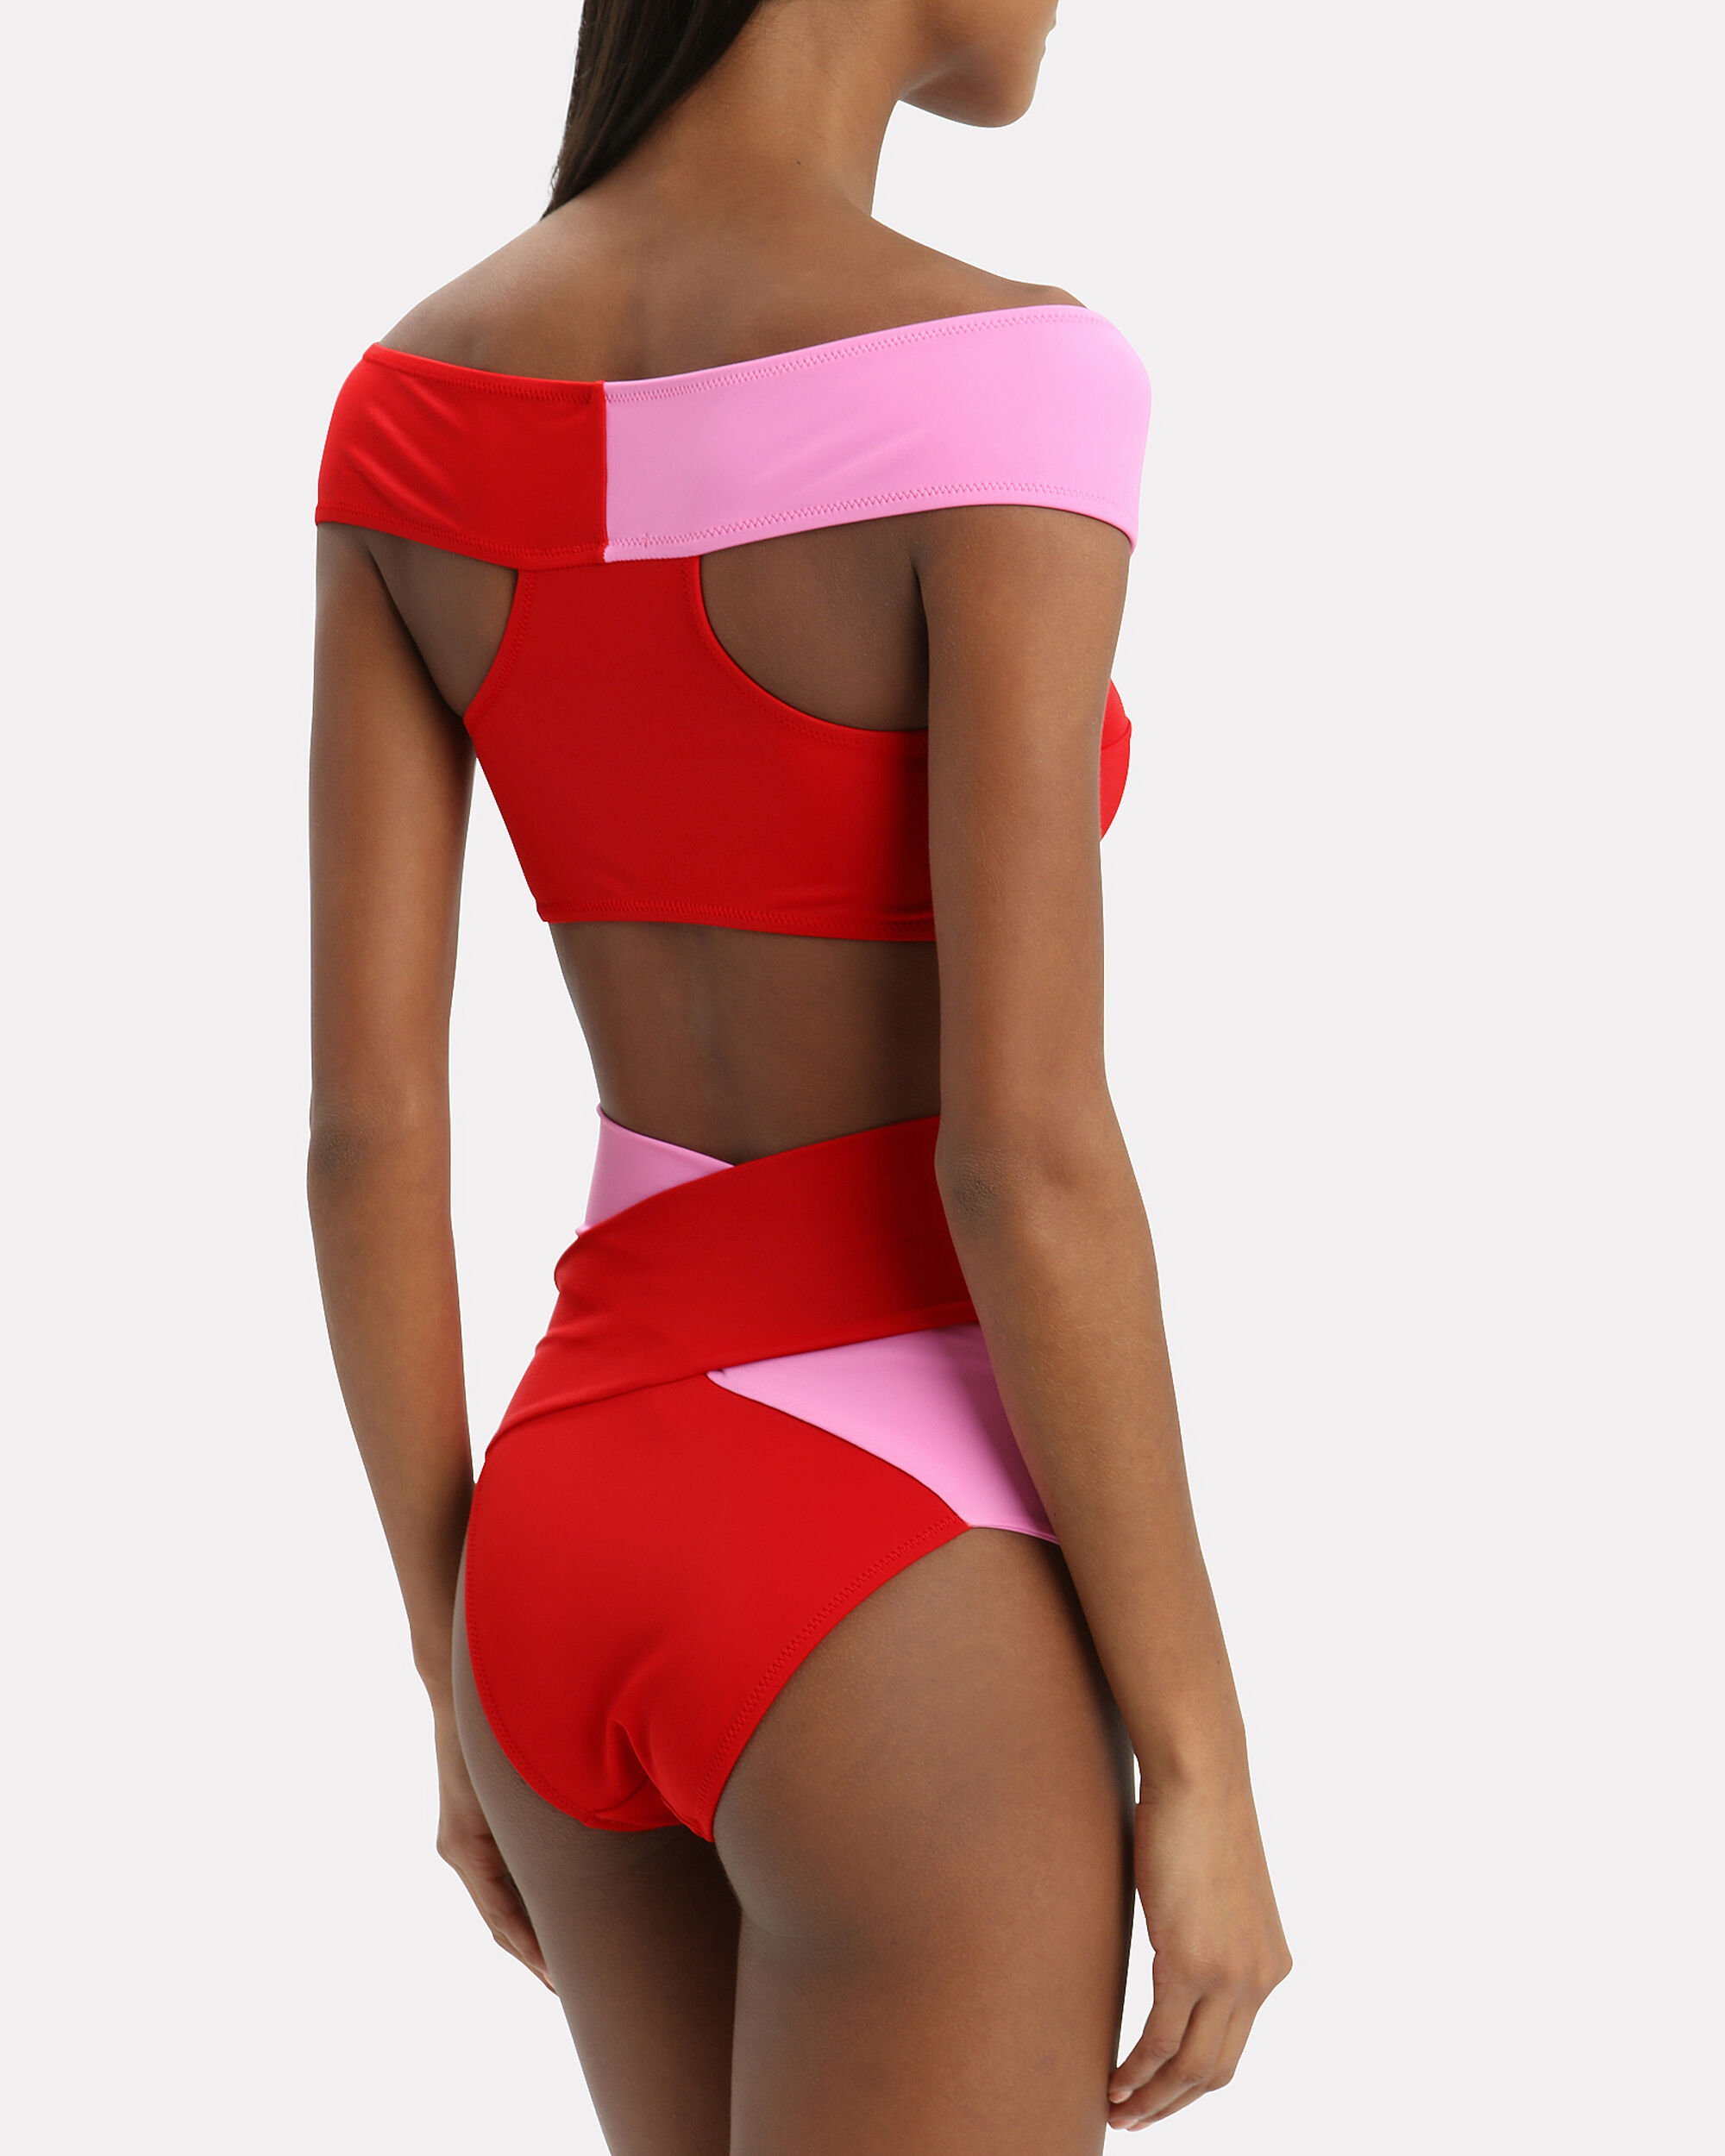 Lucette Bikini, RED/PINK, hi-res